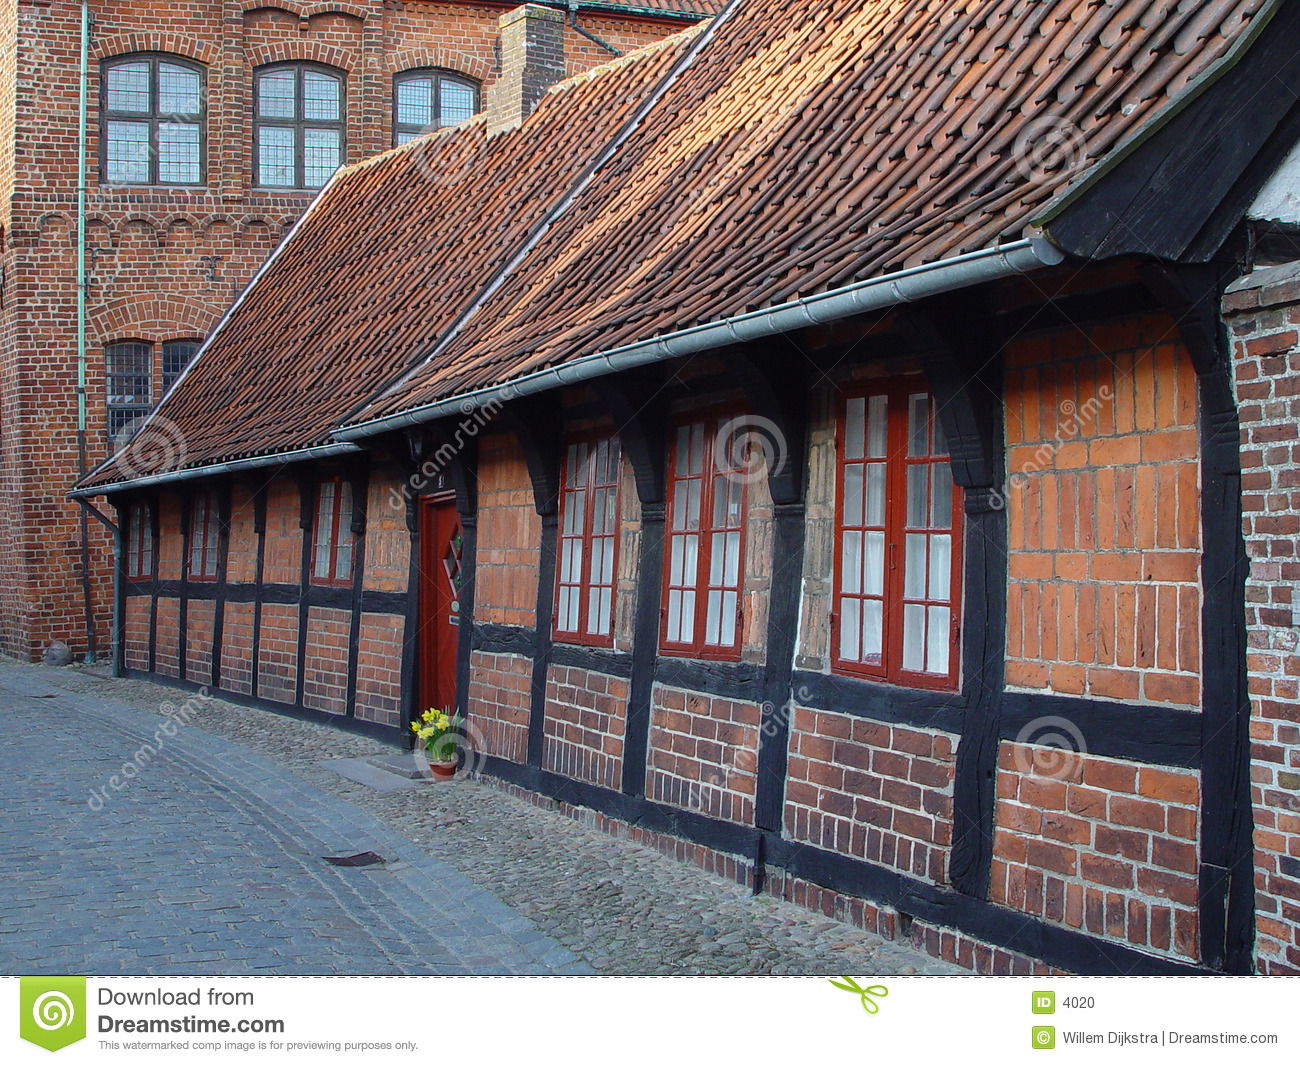 Haus in Ribe